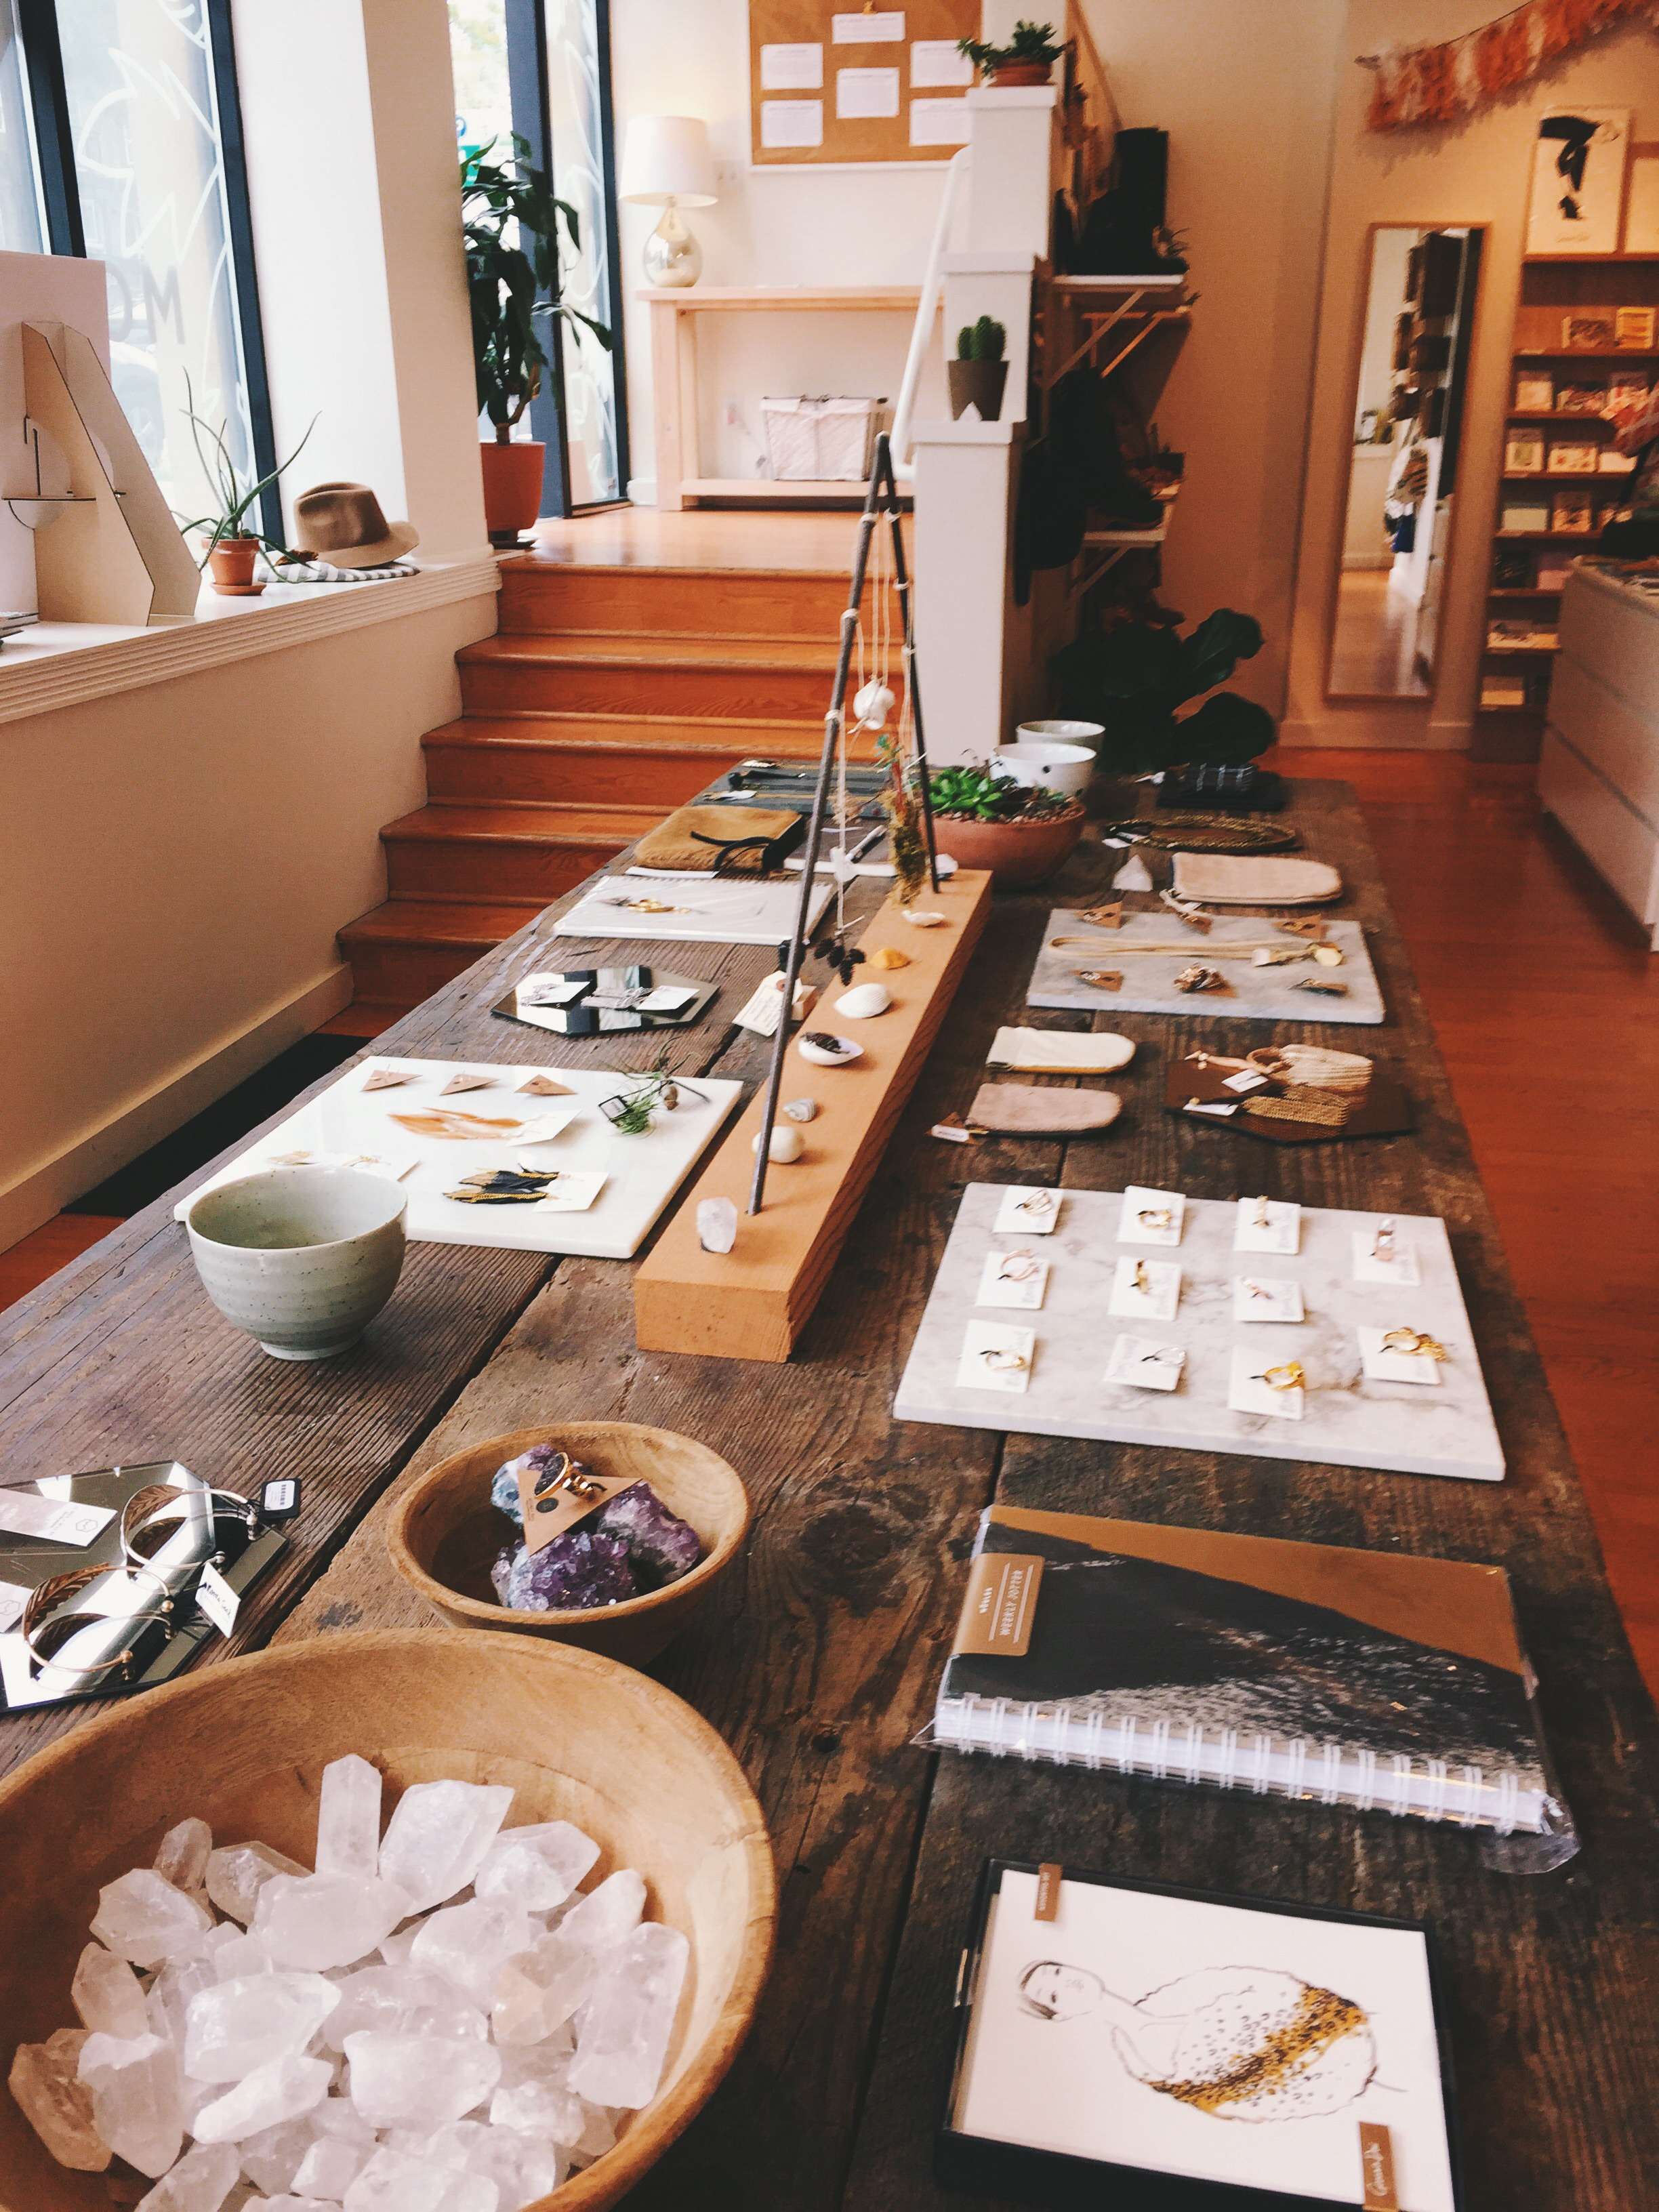 I have been a big fan of Moorea Seal for several months now, and I was finally able to head into her store in Seattle. Dreamy doesn't even begin to describe it!